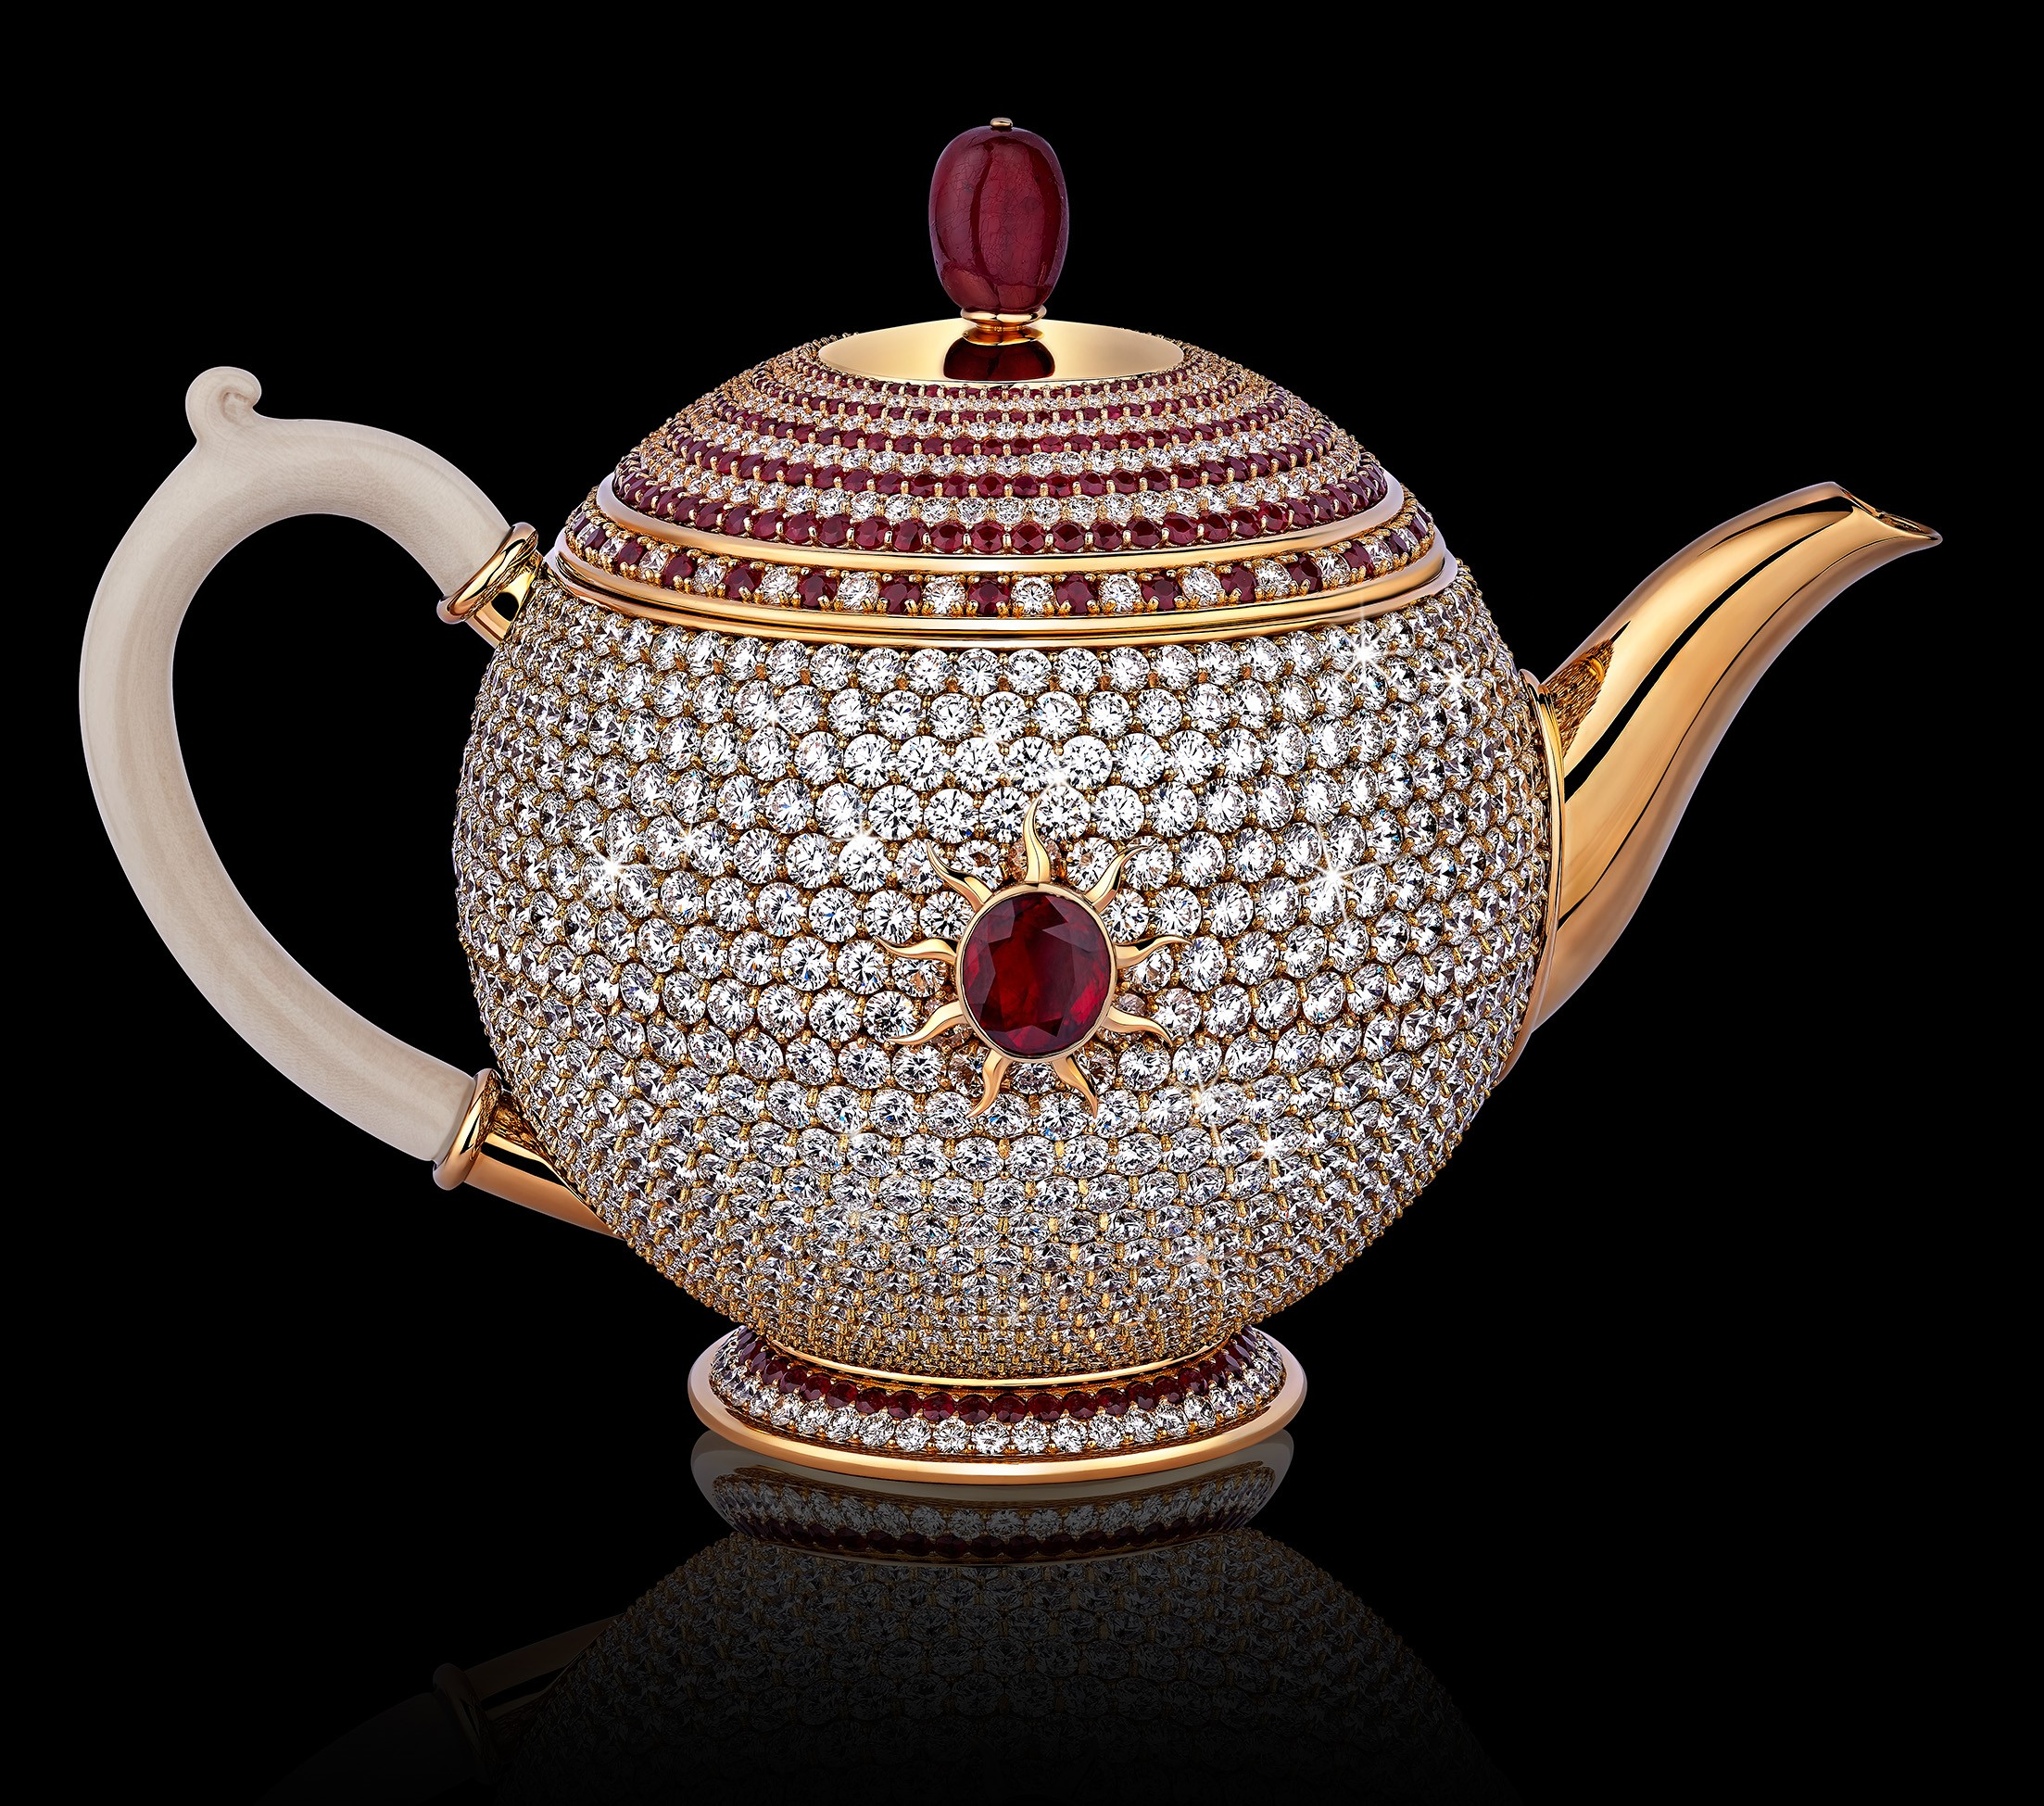 World Most Beautiful Modern House Design: Meet The World's Most Valuable Teapot!